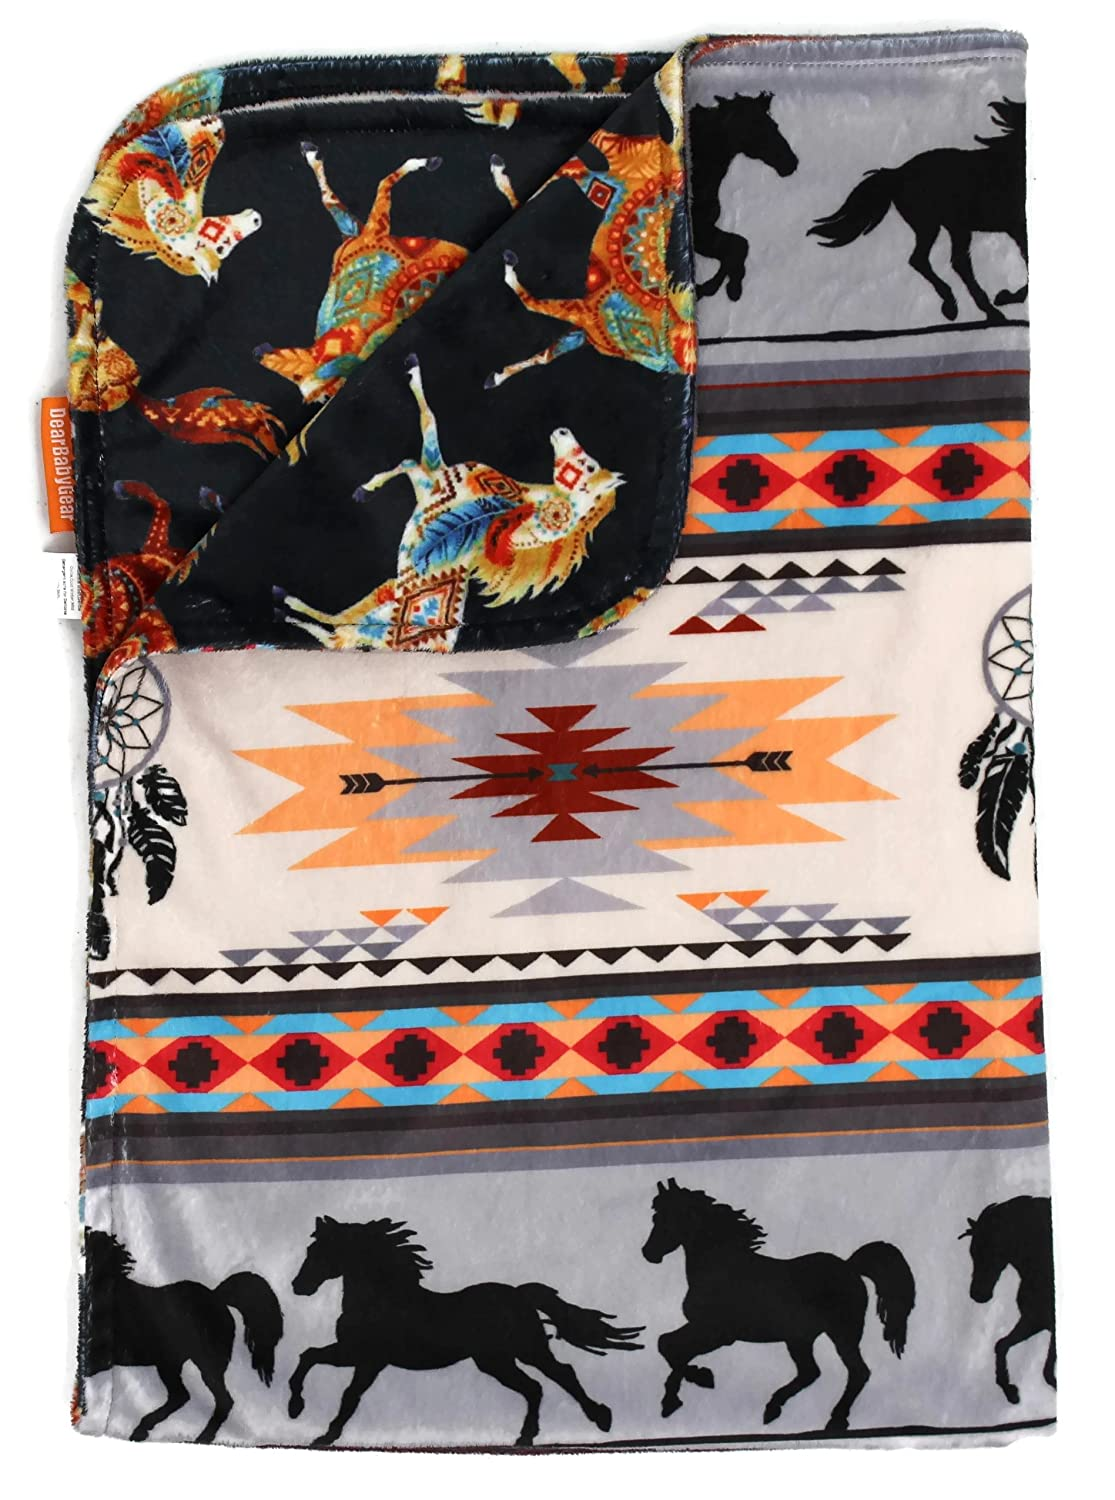 Dear Baby Gear Deluxe Reversible Baby Blankets, Minky Print, Southwestern Tribal Horses, 38 inches by 29 inches